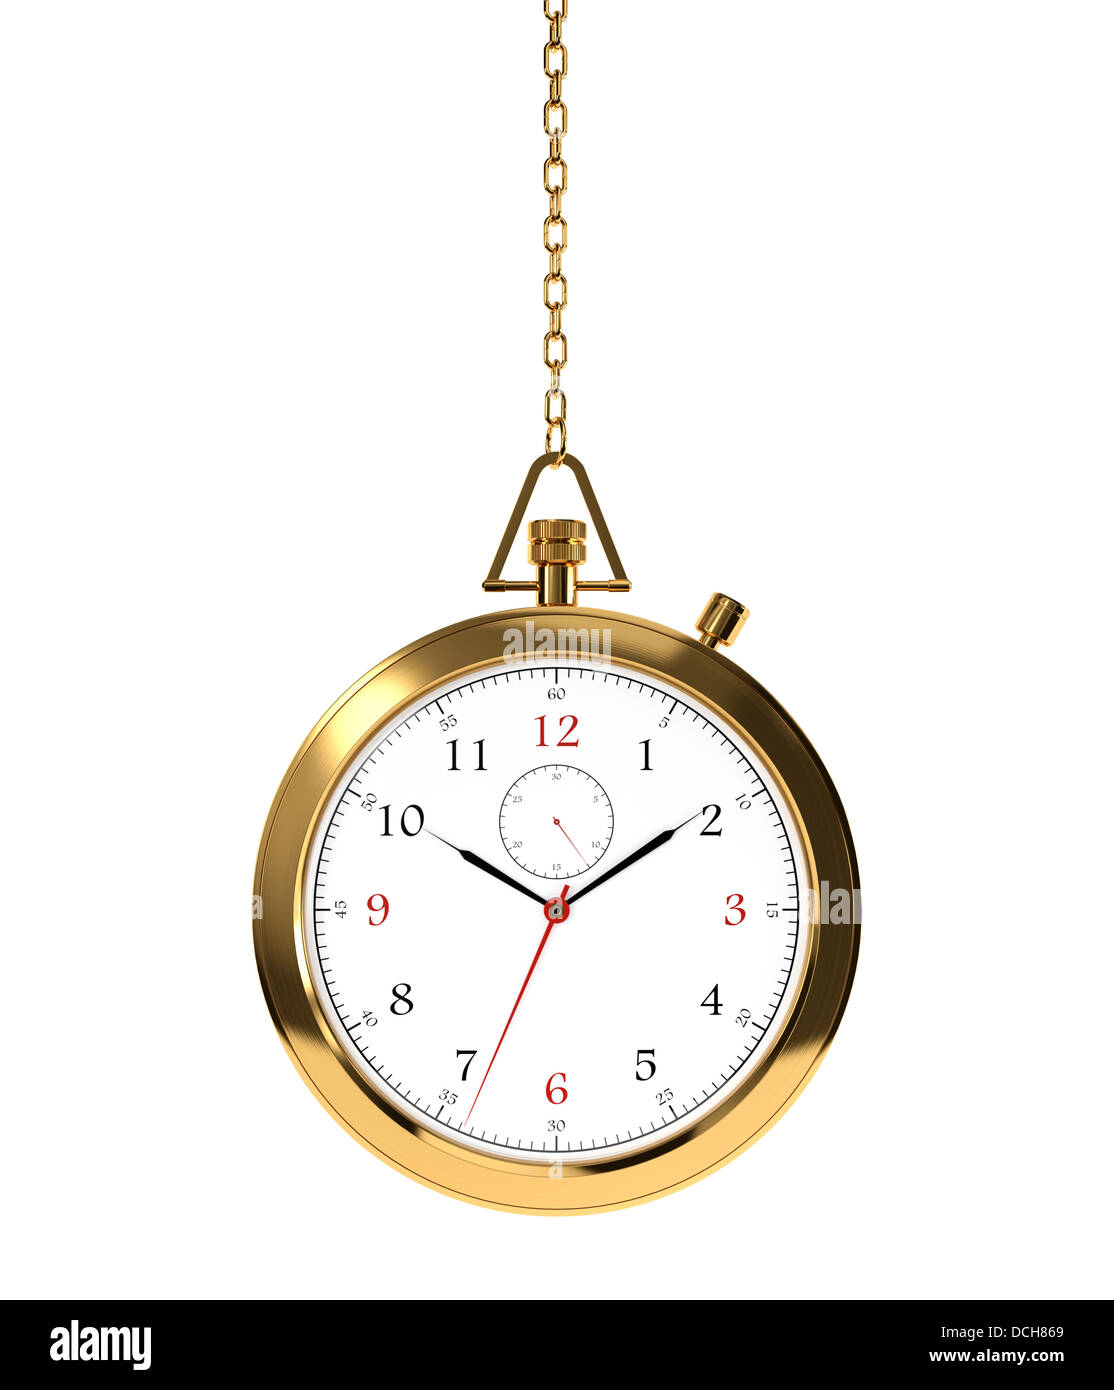 Computer generated image of golden clock isolated on white background - Stock Image